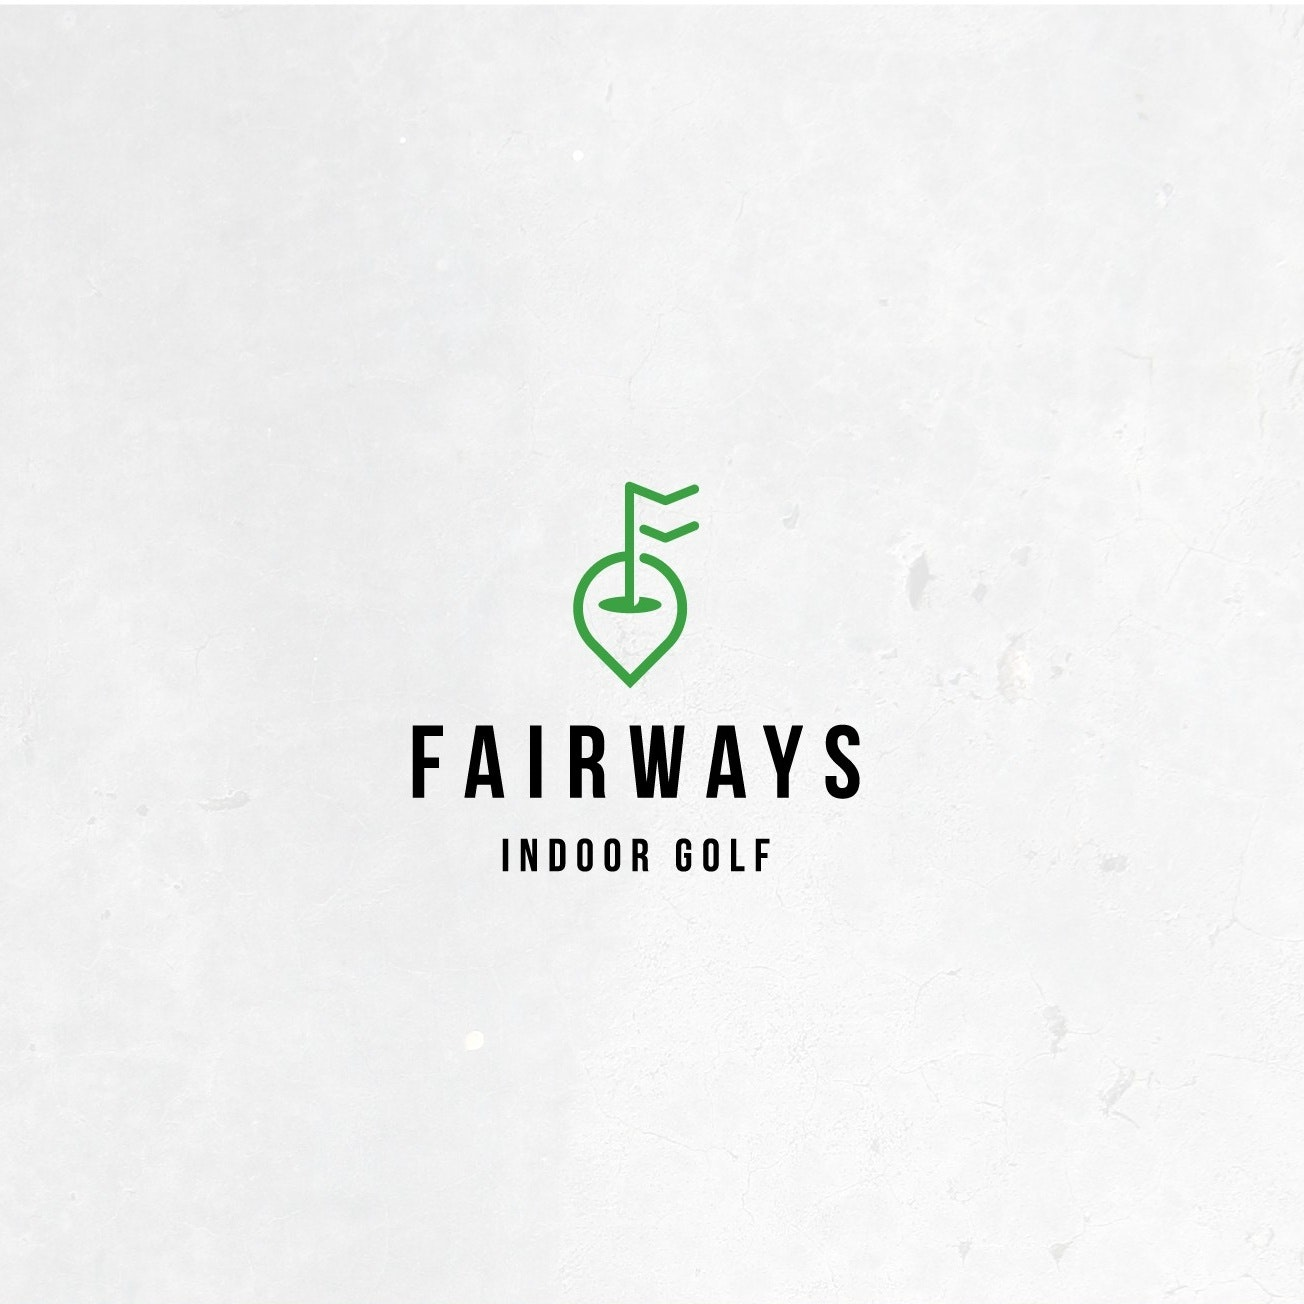 Fairways Indoor Golf logo